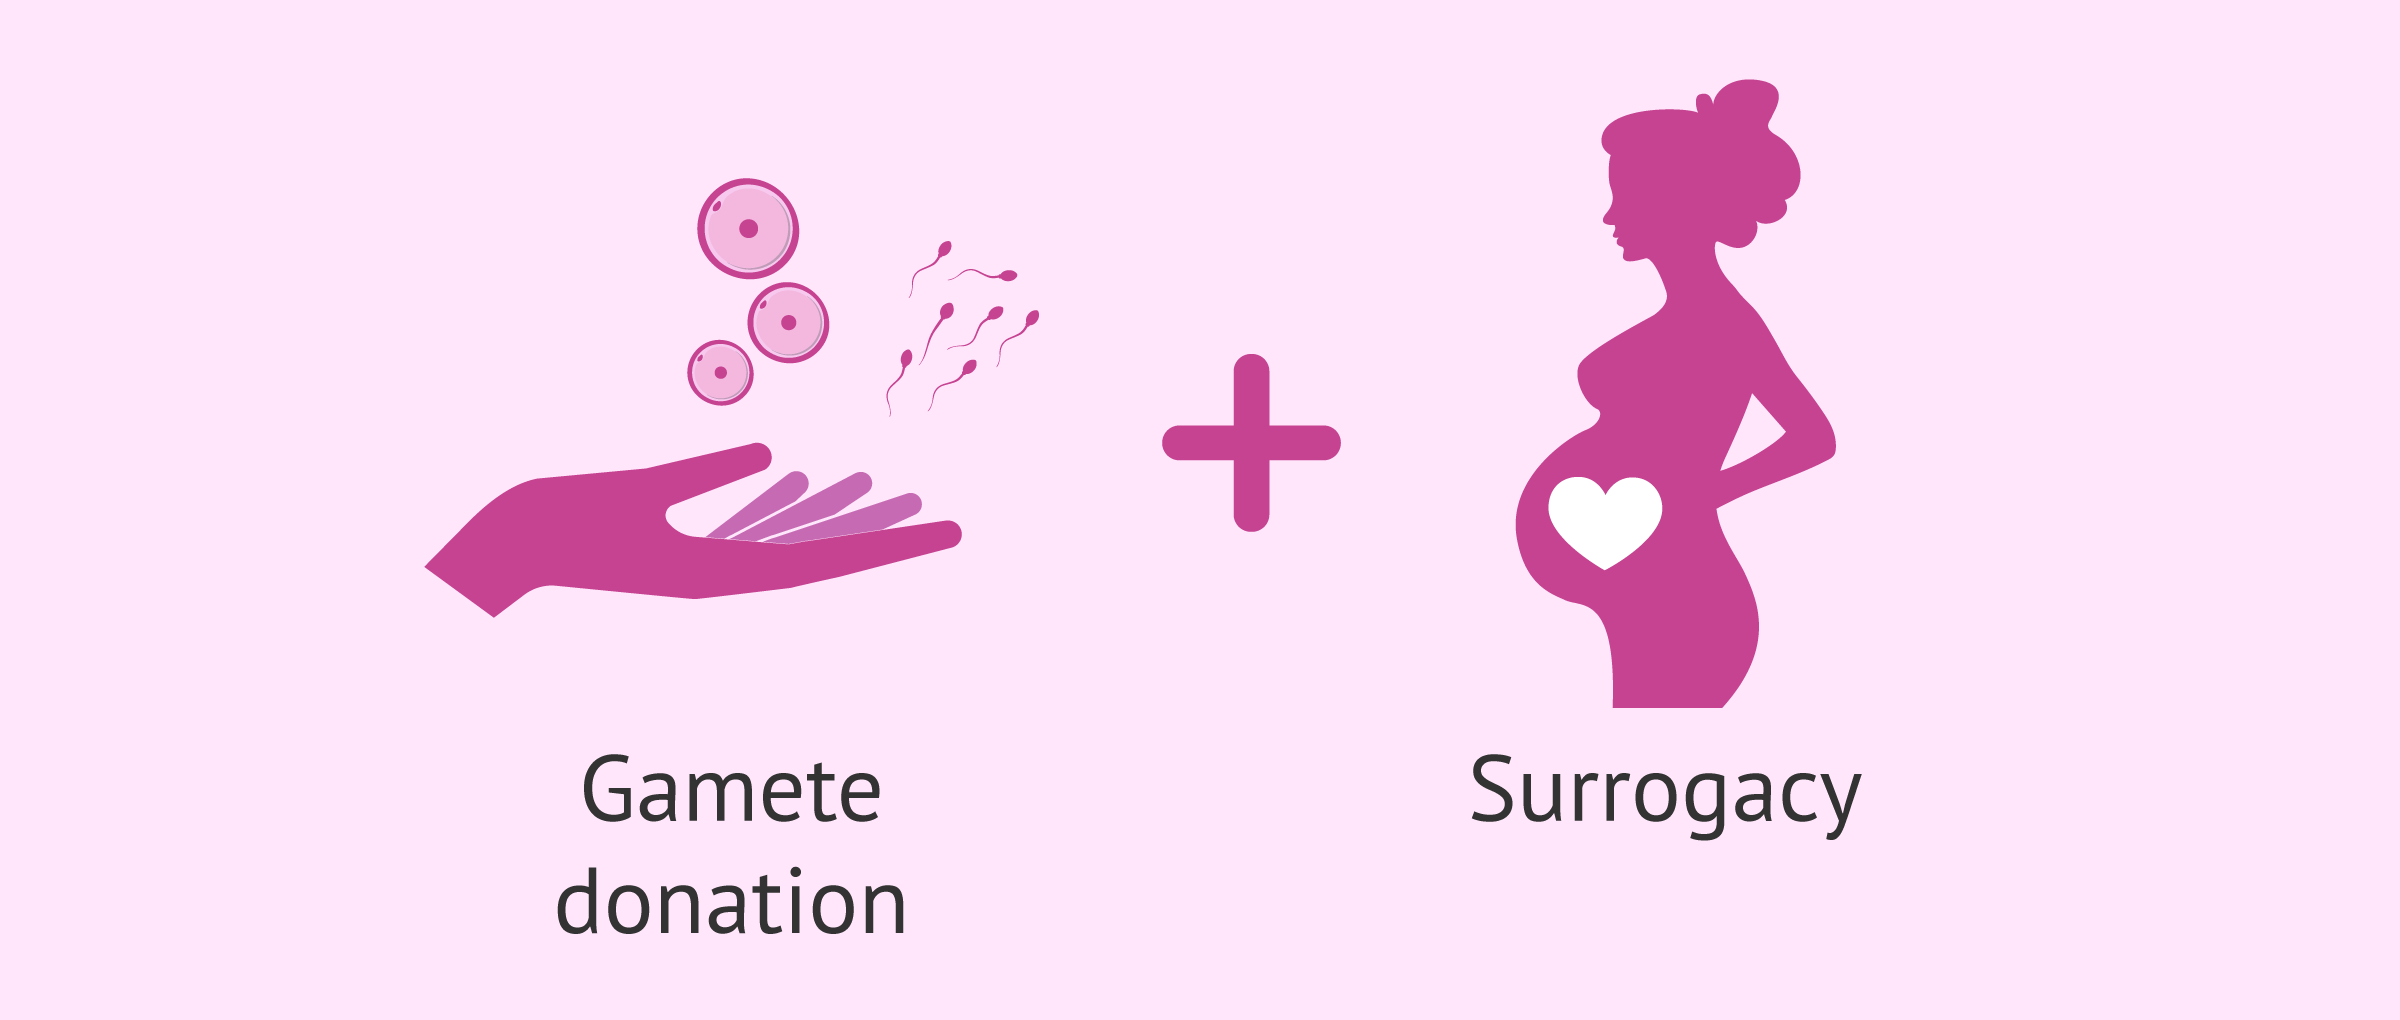 Gamete donation and surrogacy